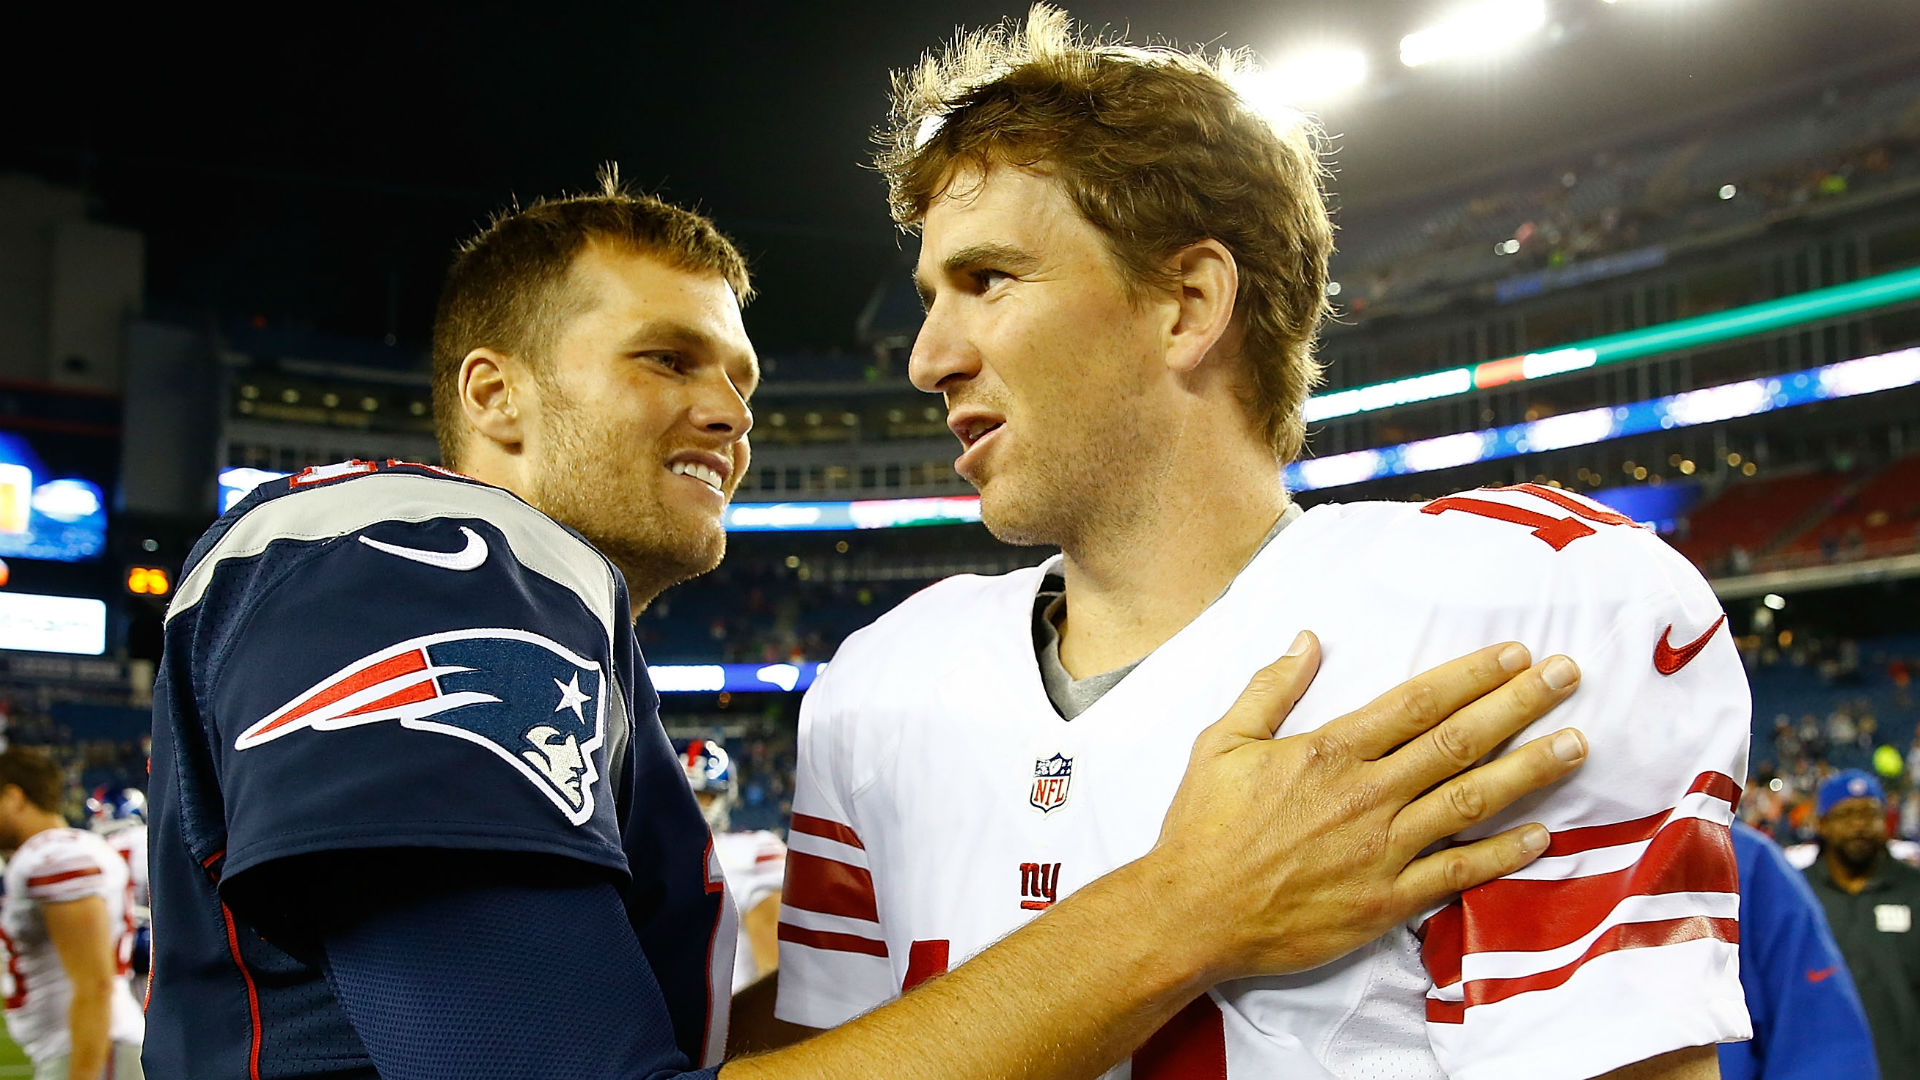 Eli Manning joined Twitter and immediately started trading humorous jabs with Tom Brady 1